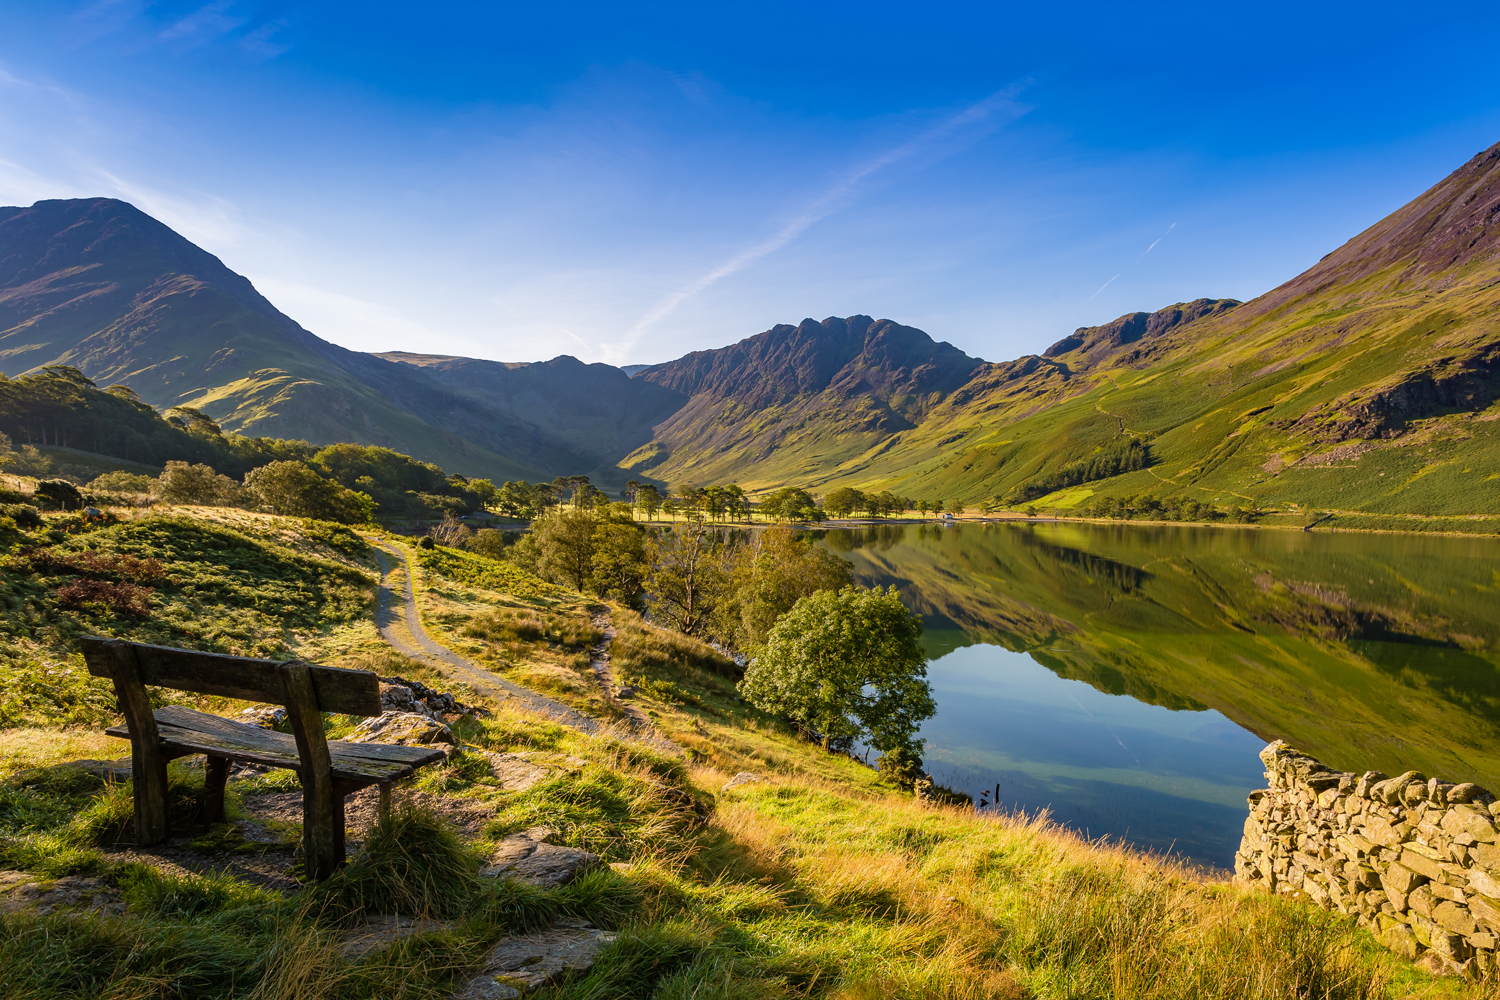 Lake District National Park, England